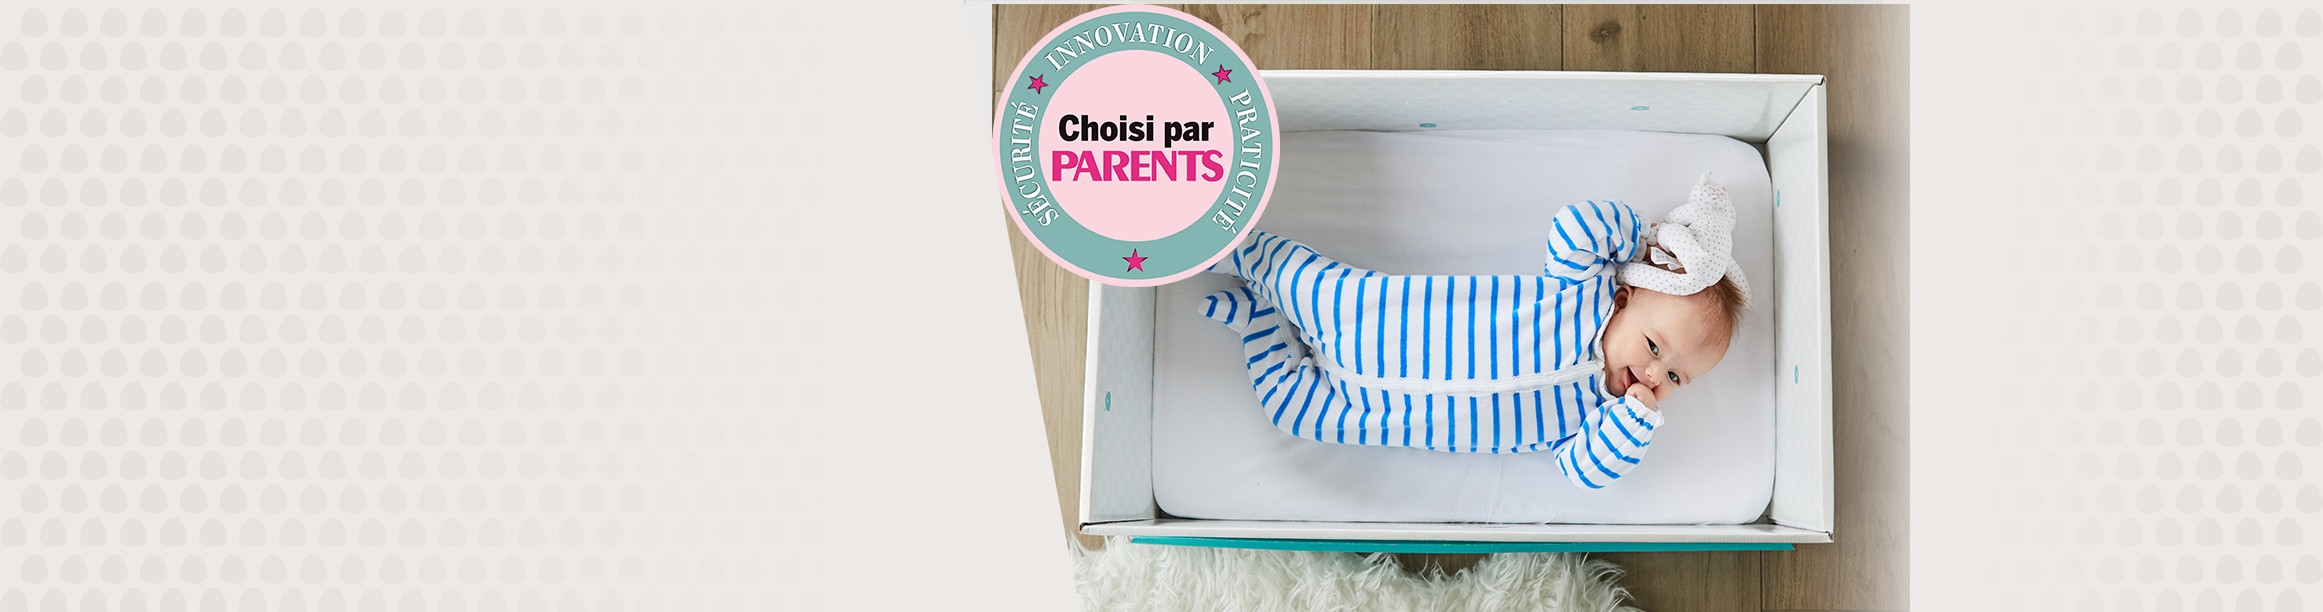 MARMOTT La 1re Babybox Franaise Homologue Marmott